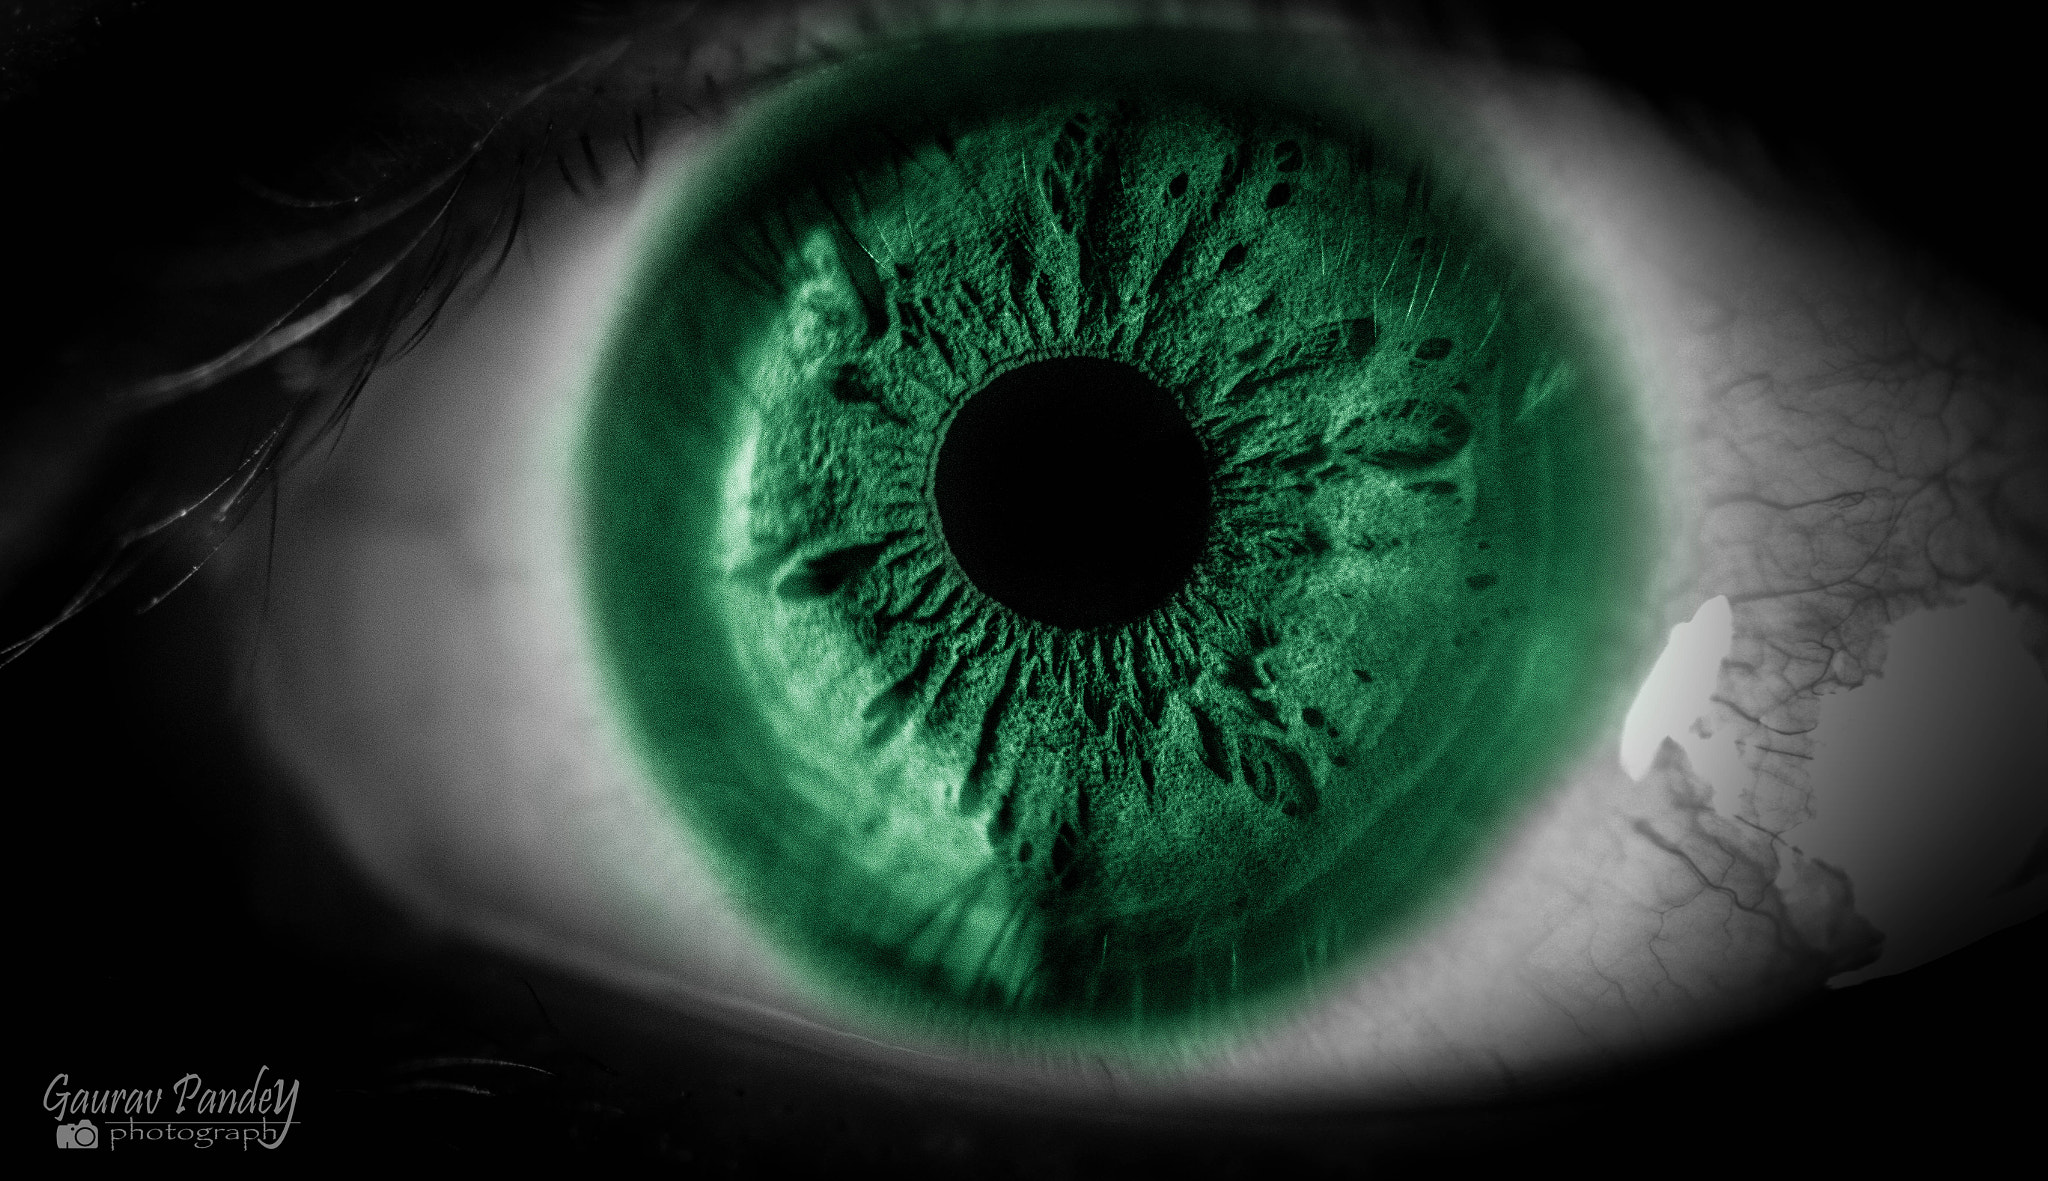 Photograph Green eyes by Gaurav Pandey on 500px